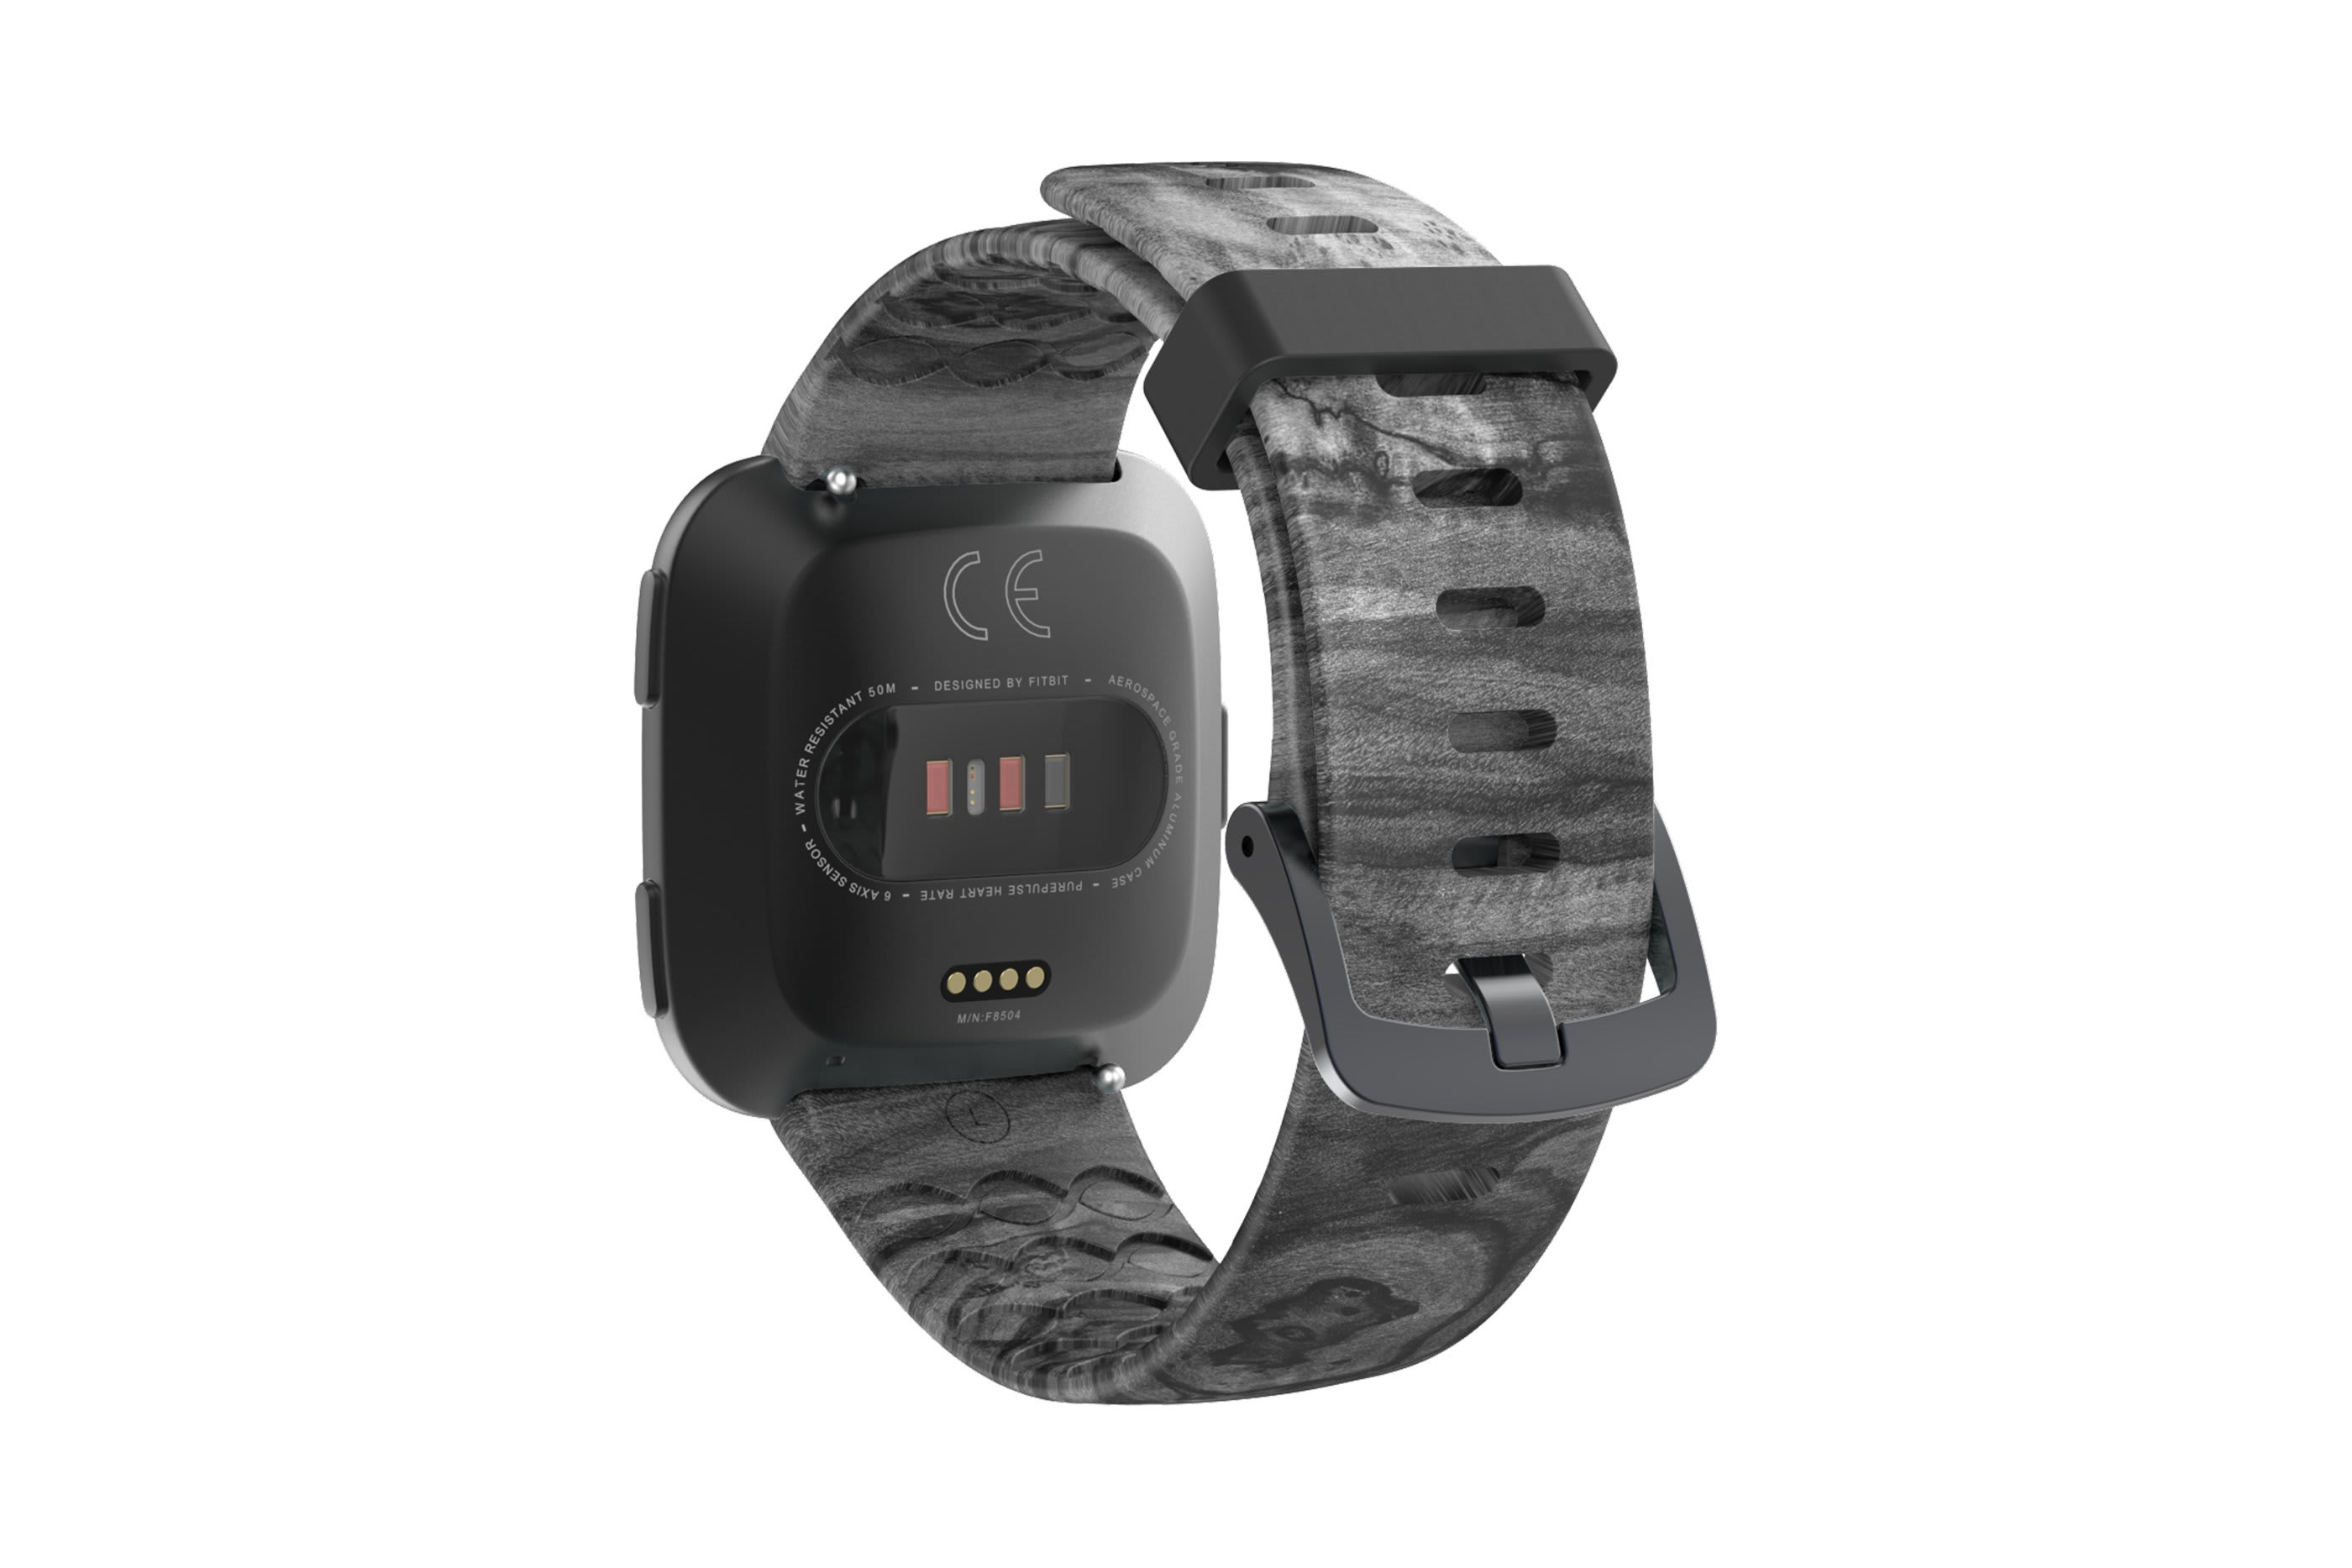 Nomad Relic fitbit versa watch band with gray hardware viewed from top down